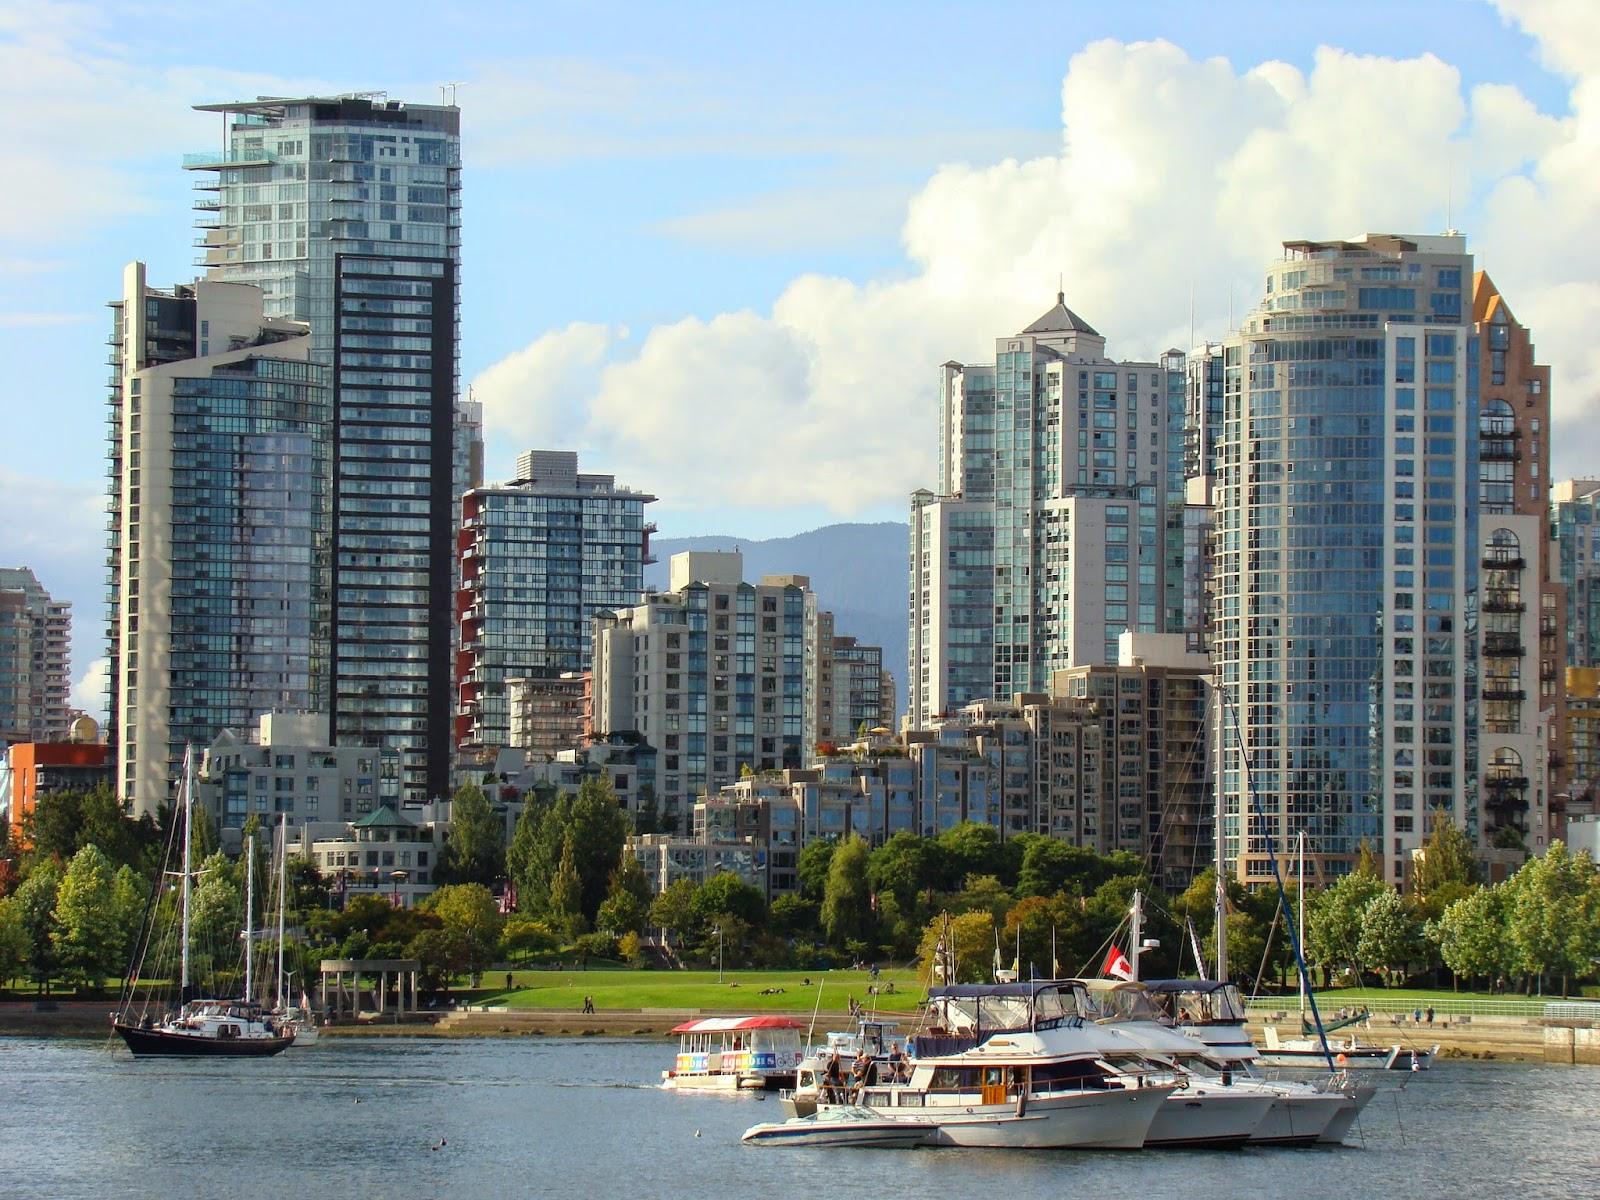 Vancouver Yaletown view from False Creek